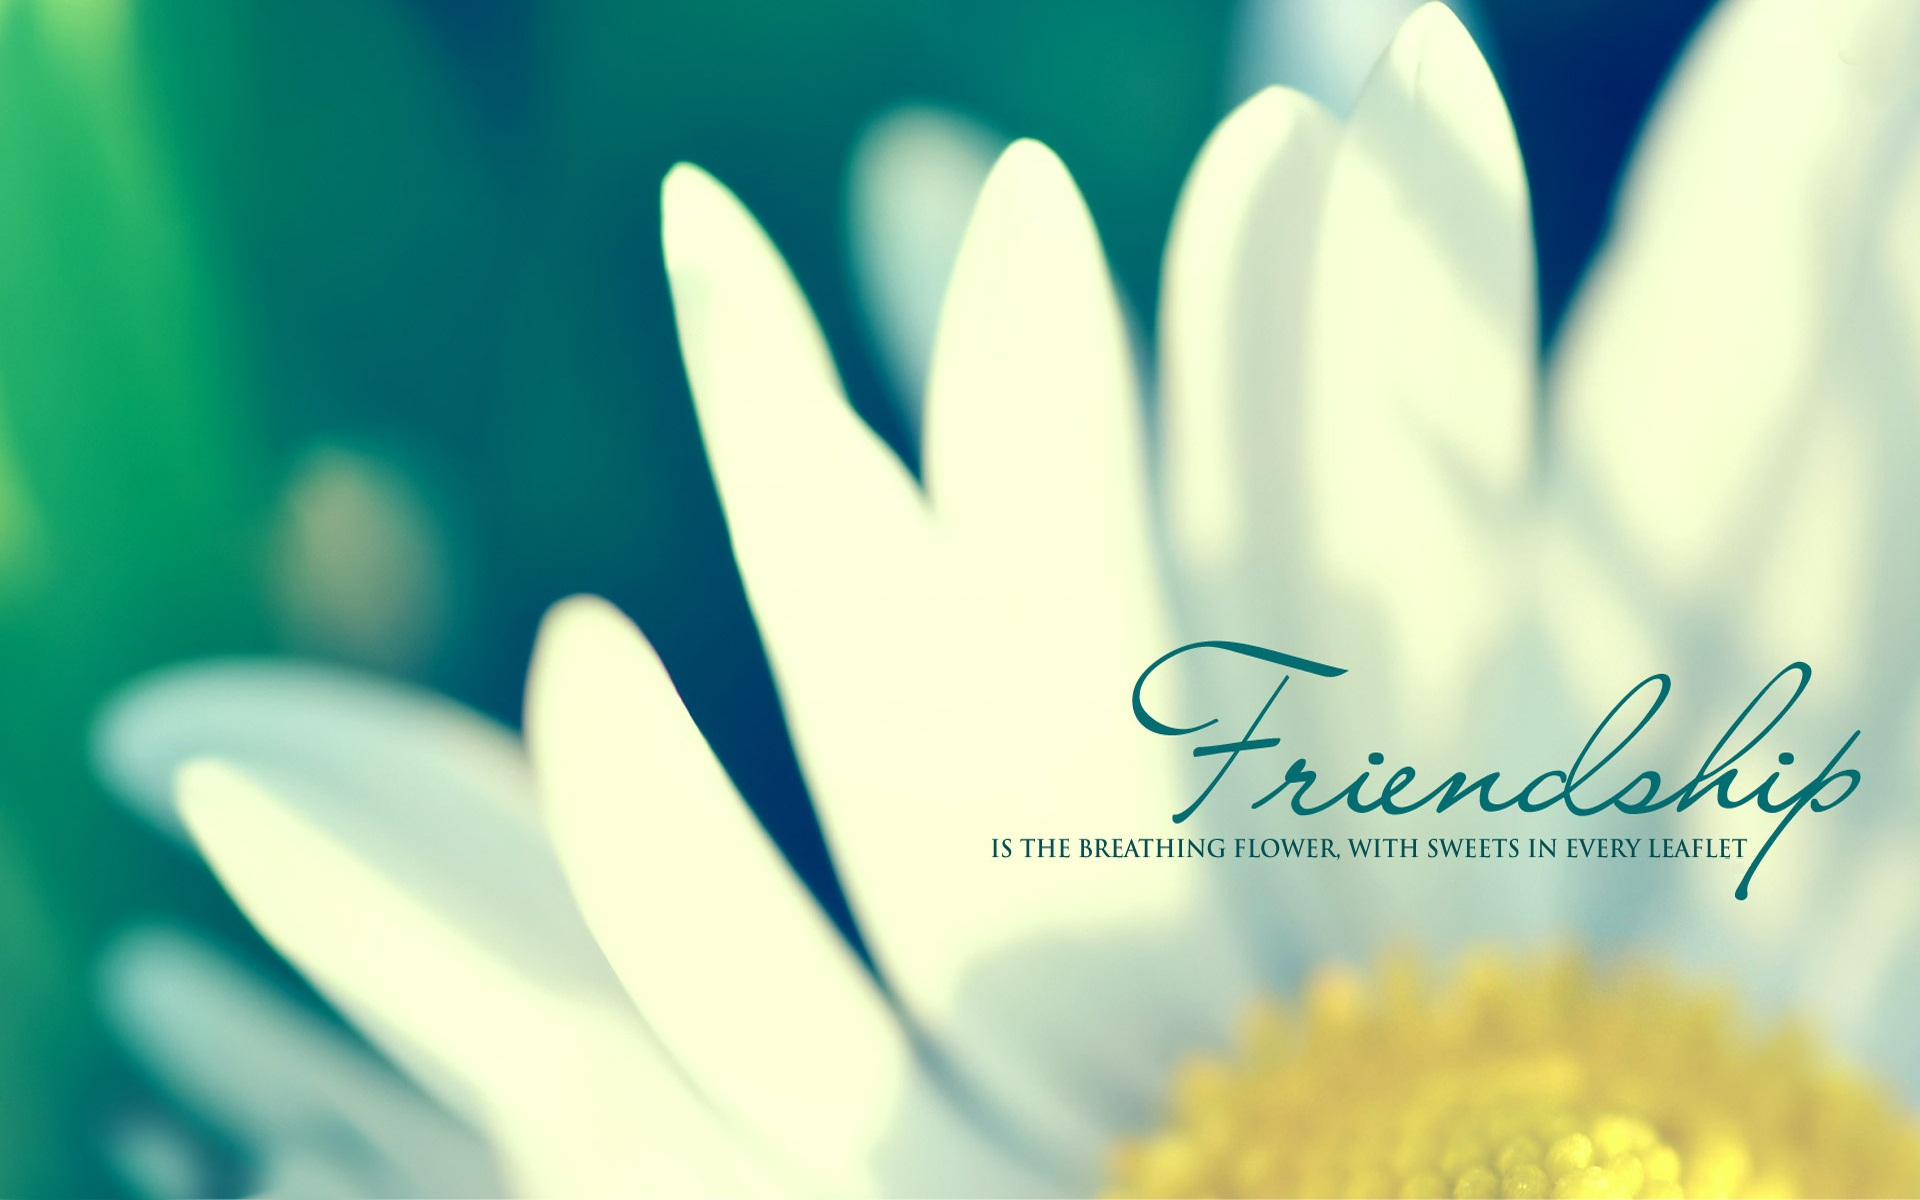 Friendship Quotes Desktop Backgrounds - Wallpaper, High ...